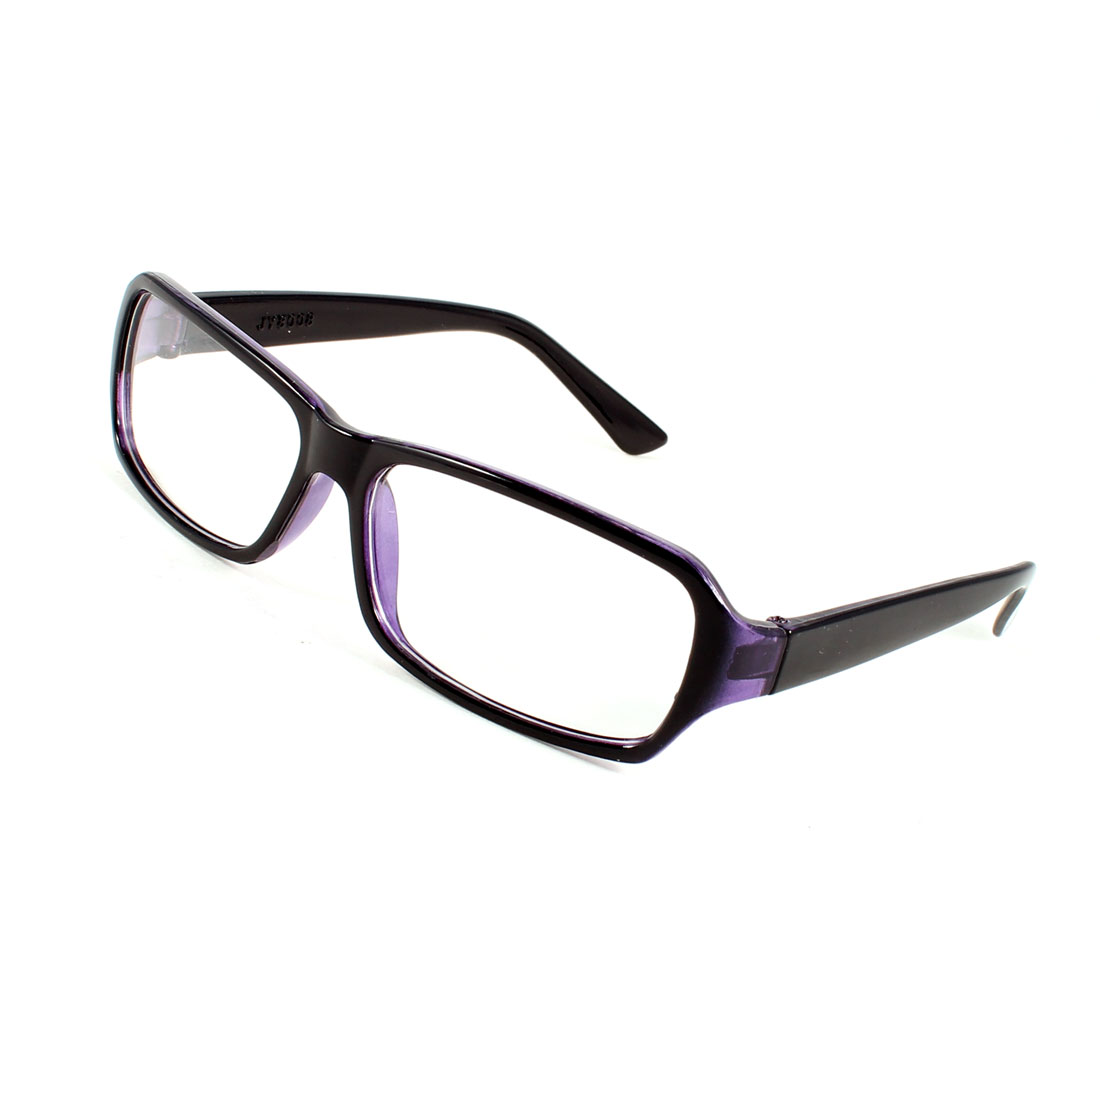 Women Men Black Frame Clear Lens Plain Glasses Eyeglasses